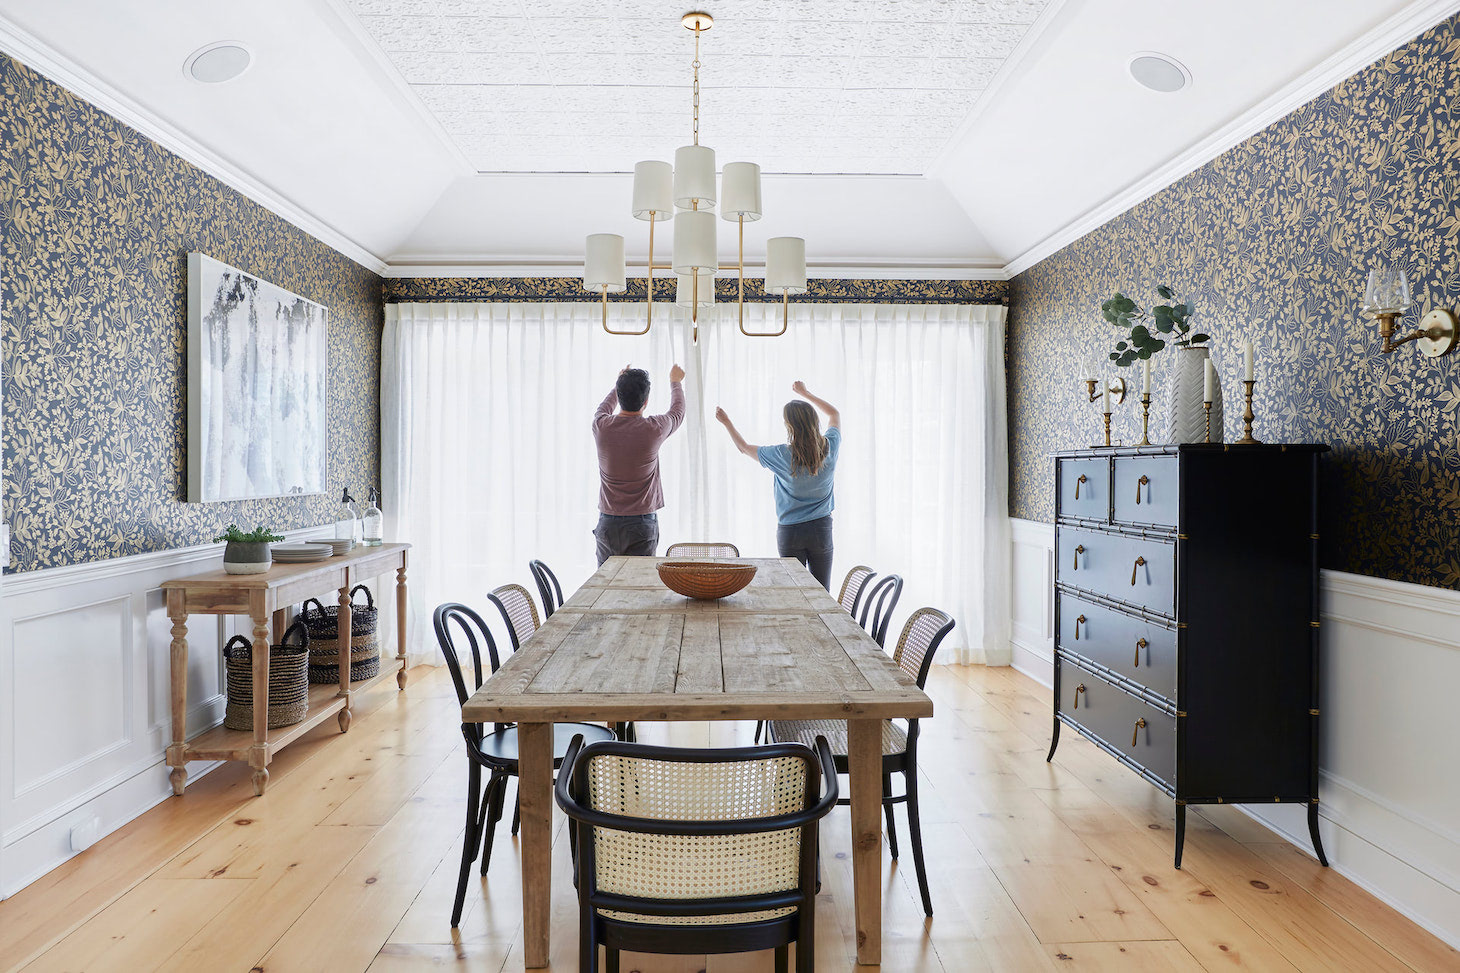 Haley Weidenbaum and her husband hanging white drapes in a dining room | Everhem